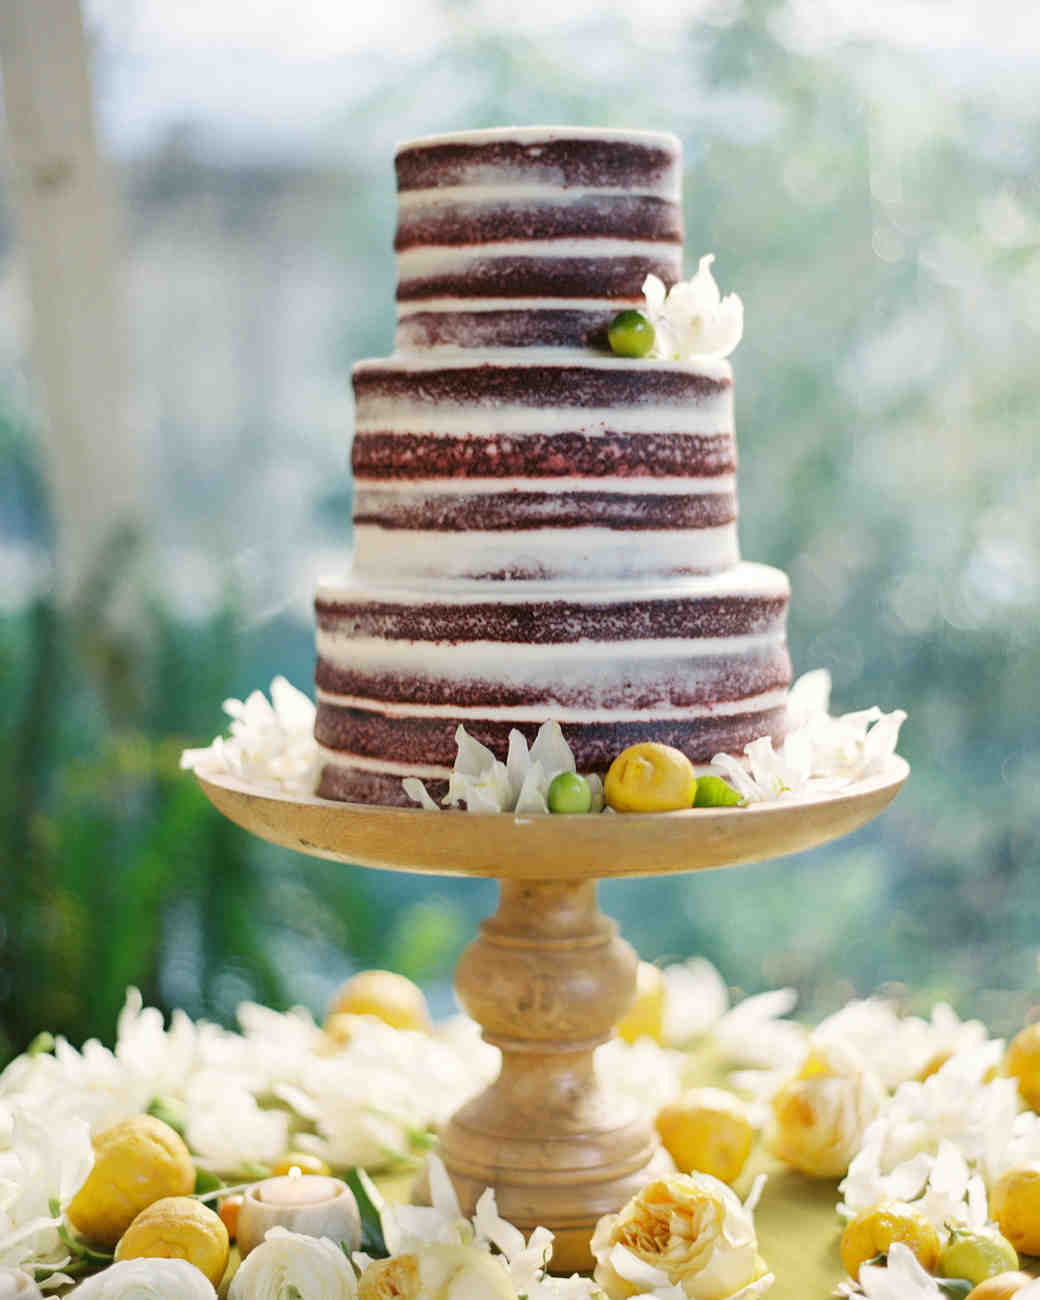 20 Wedding Cake Alternatives Your Guests Will Love